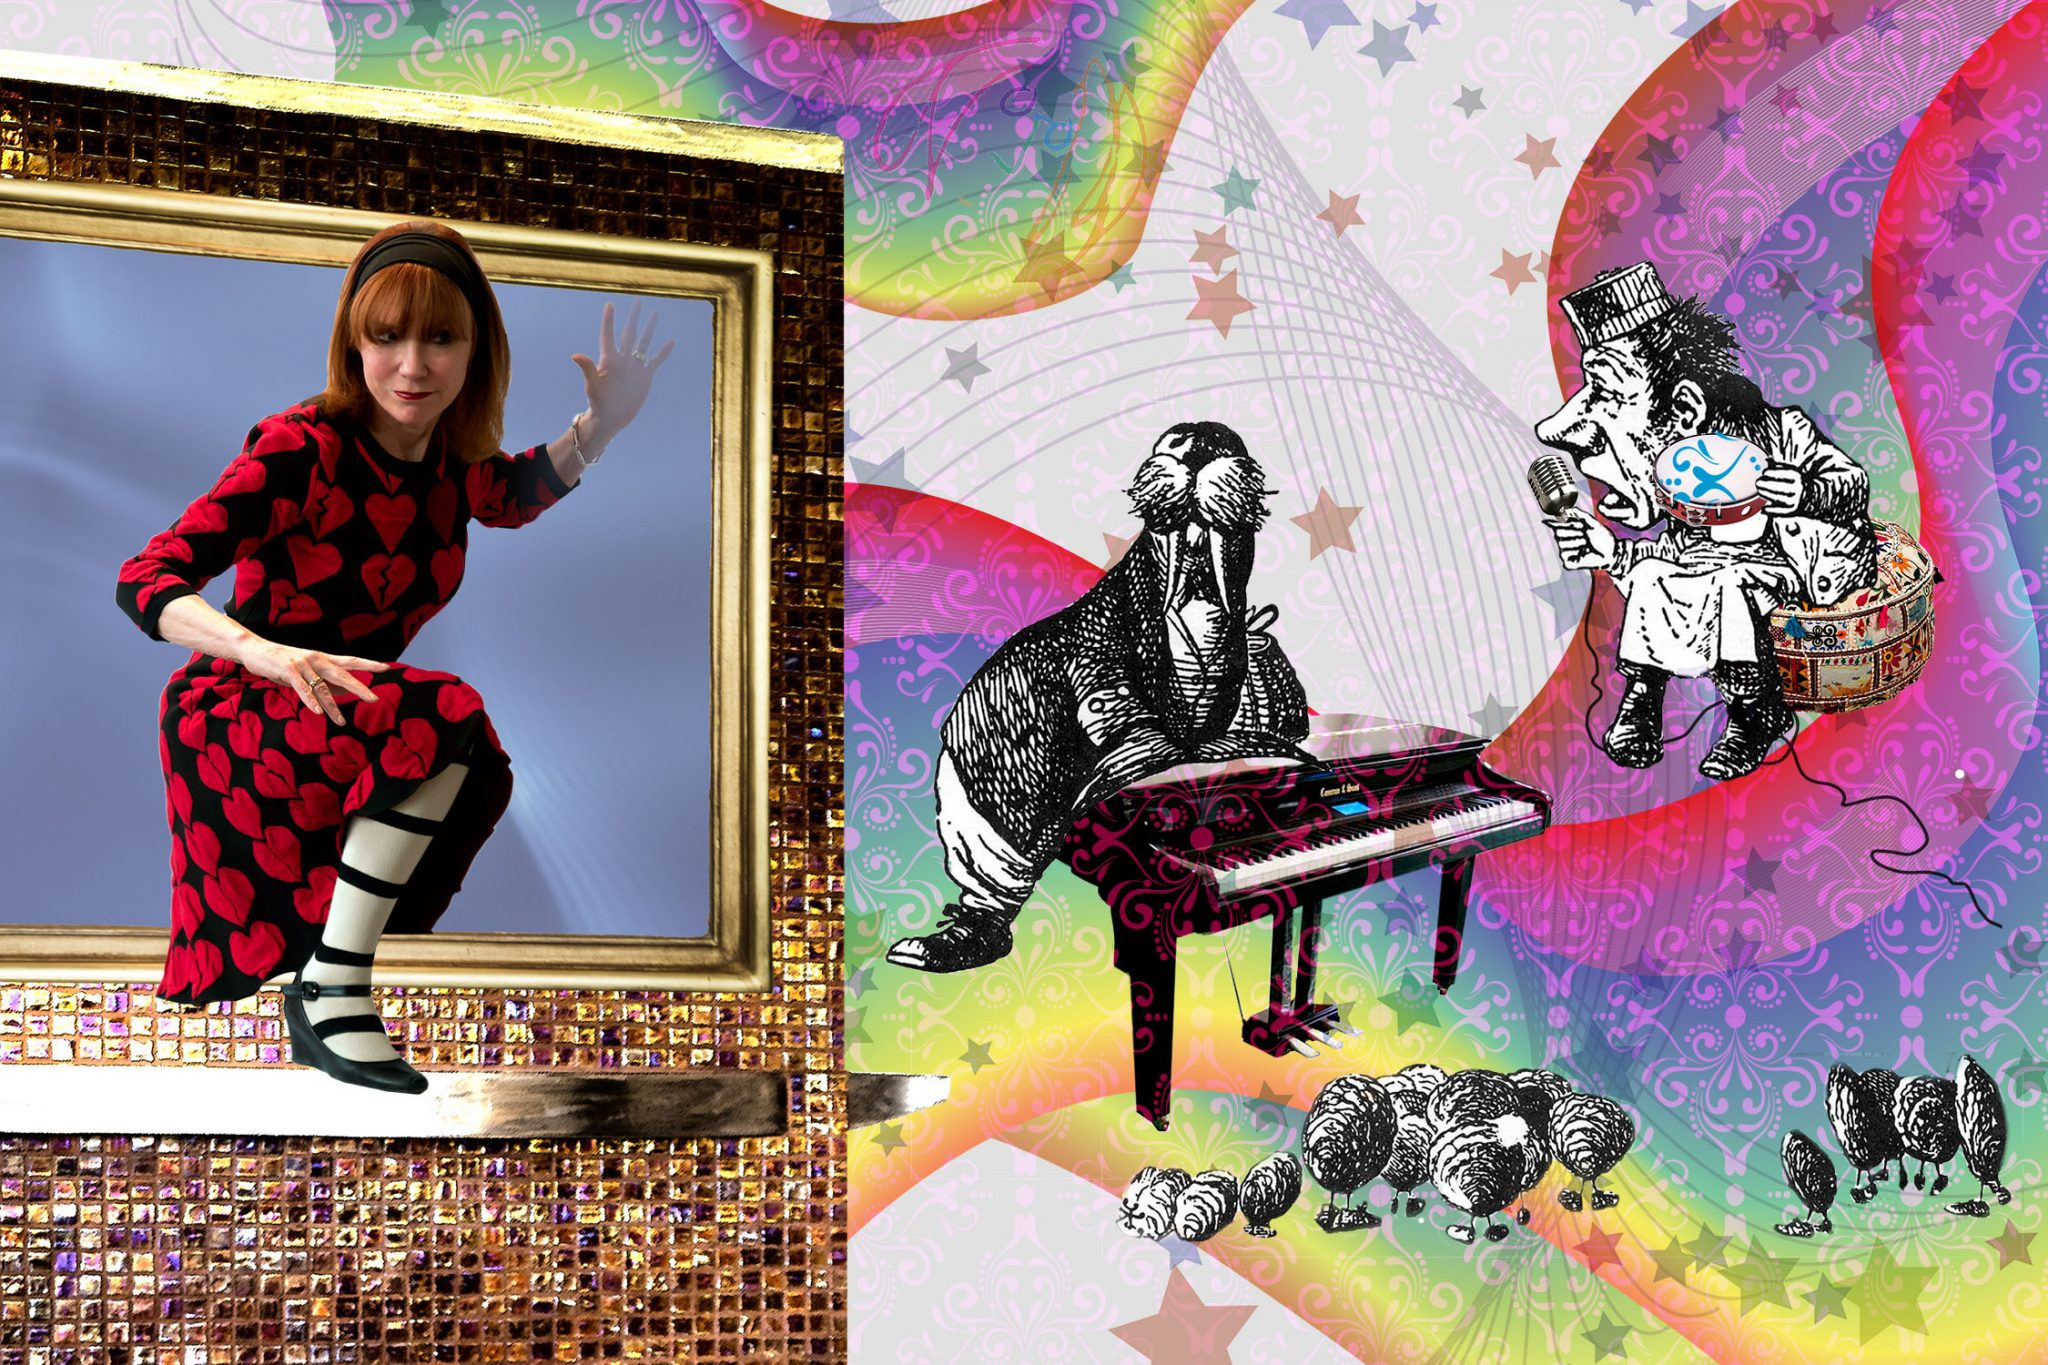 Through the Looking Glass homage to John Lennon and the Beatles song I Am the Walrus